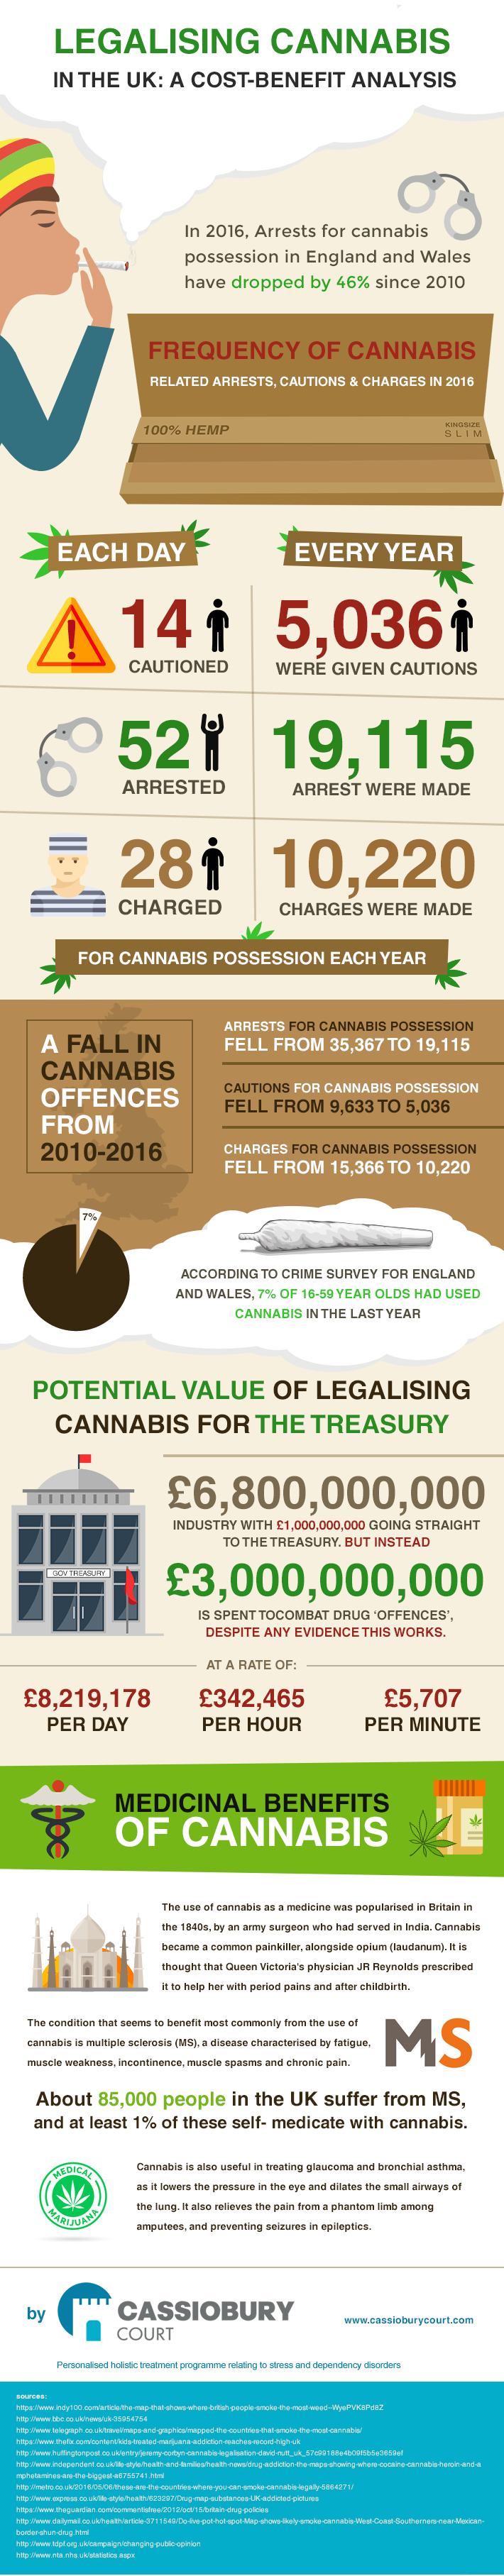 Cannabis Cost Benefit Analysis U.K.